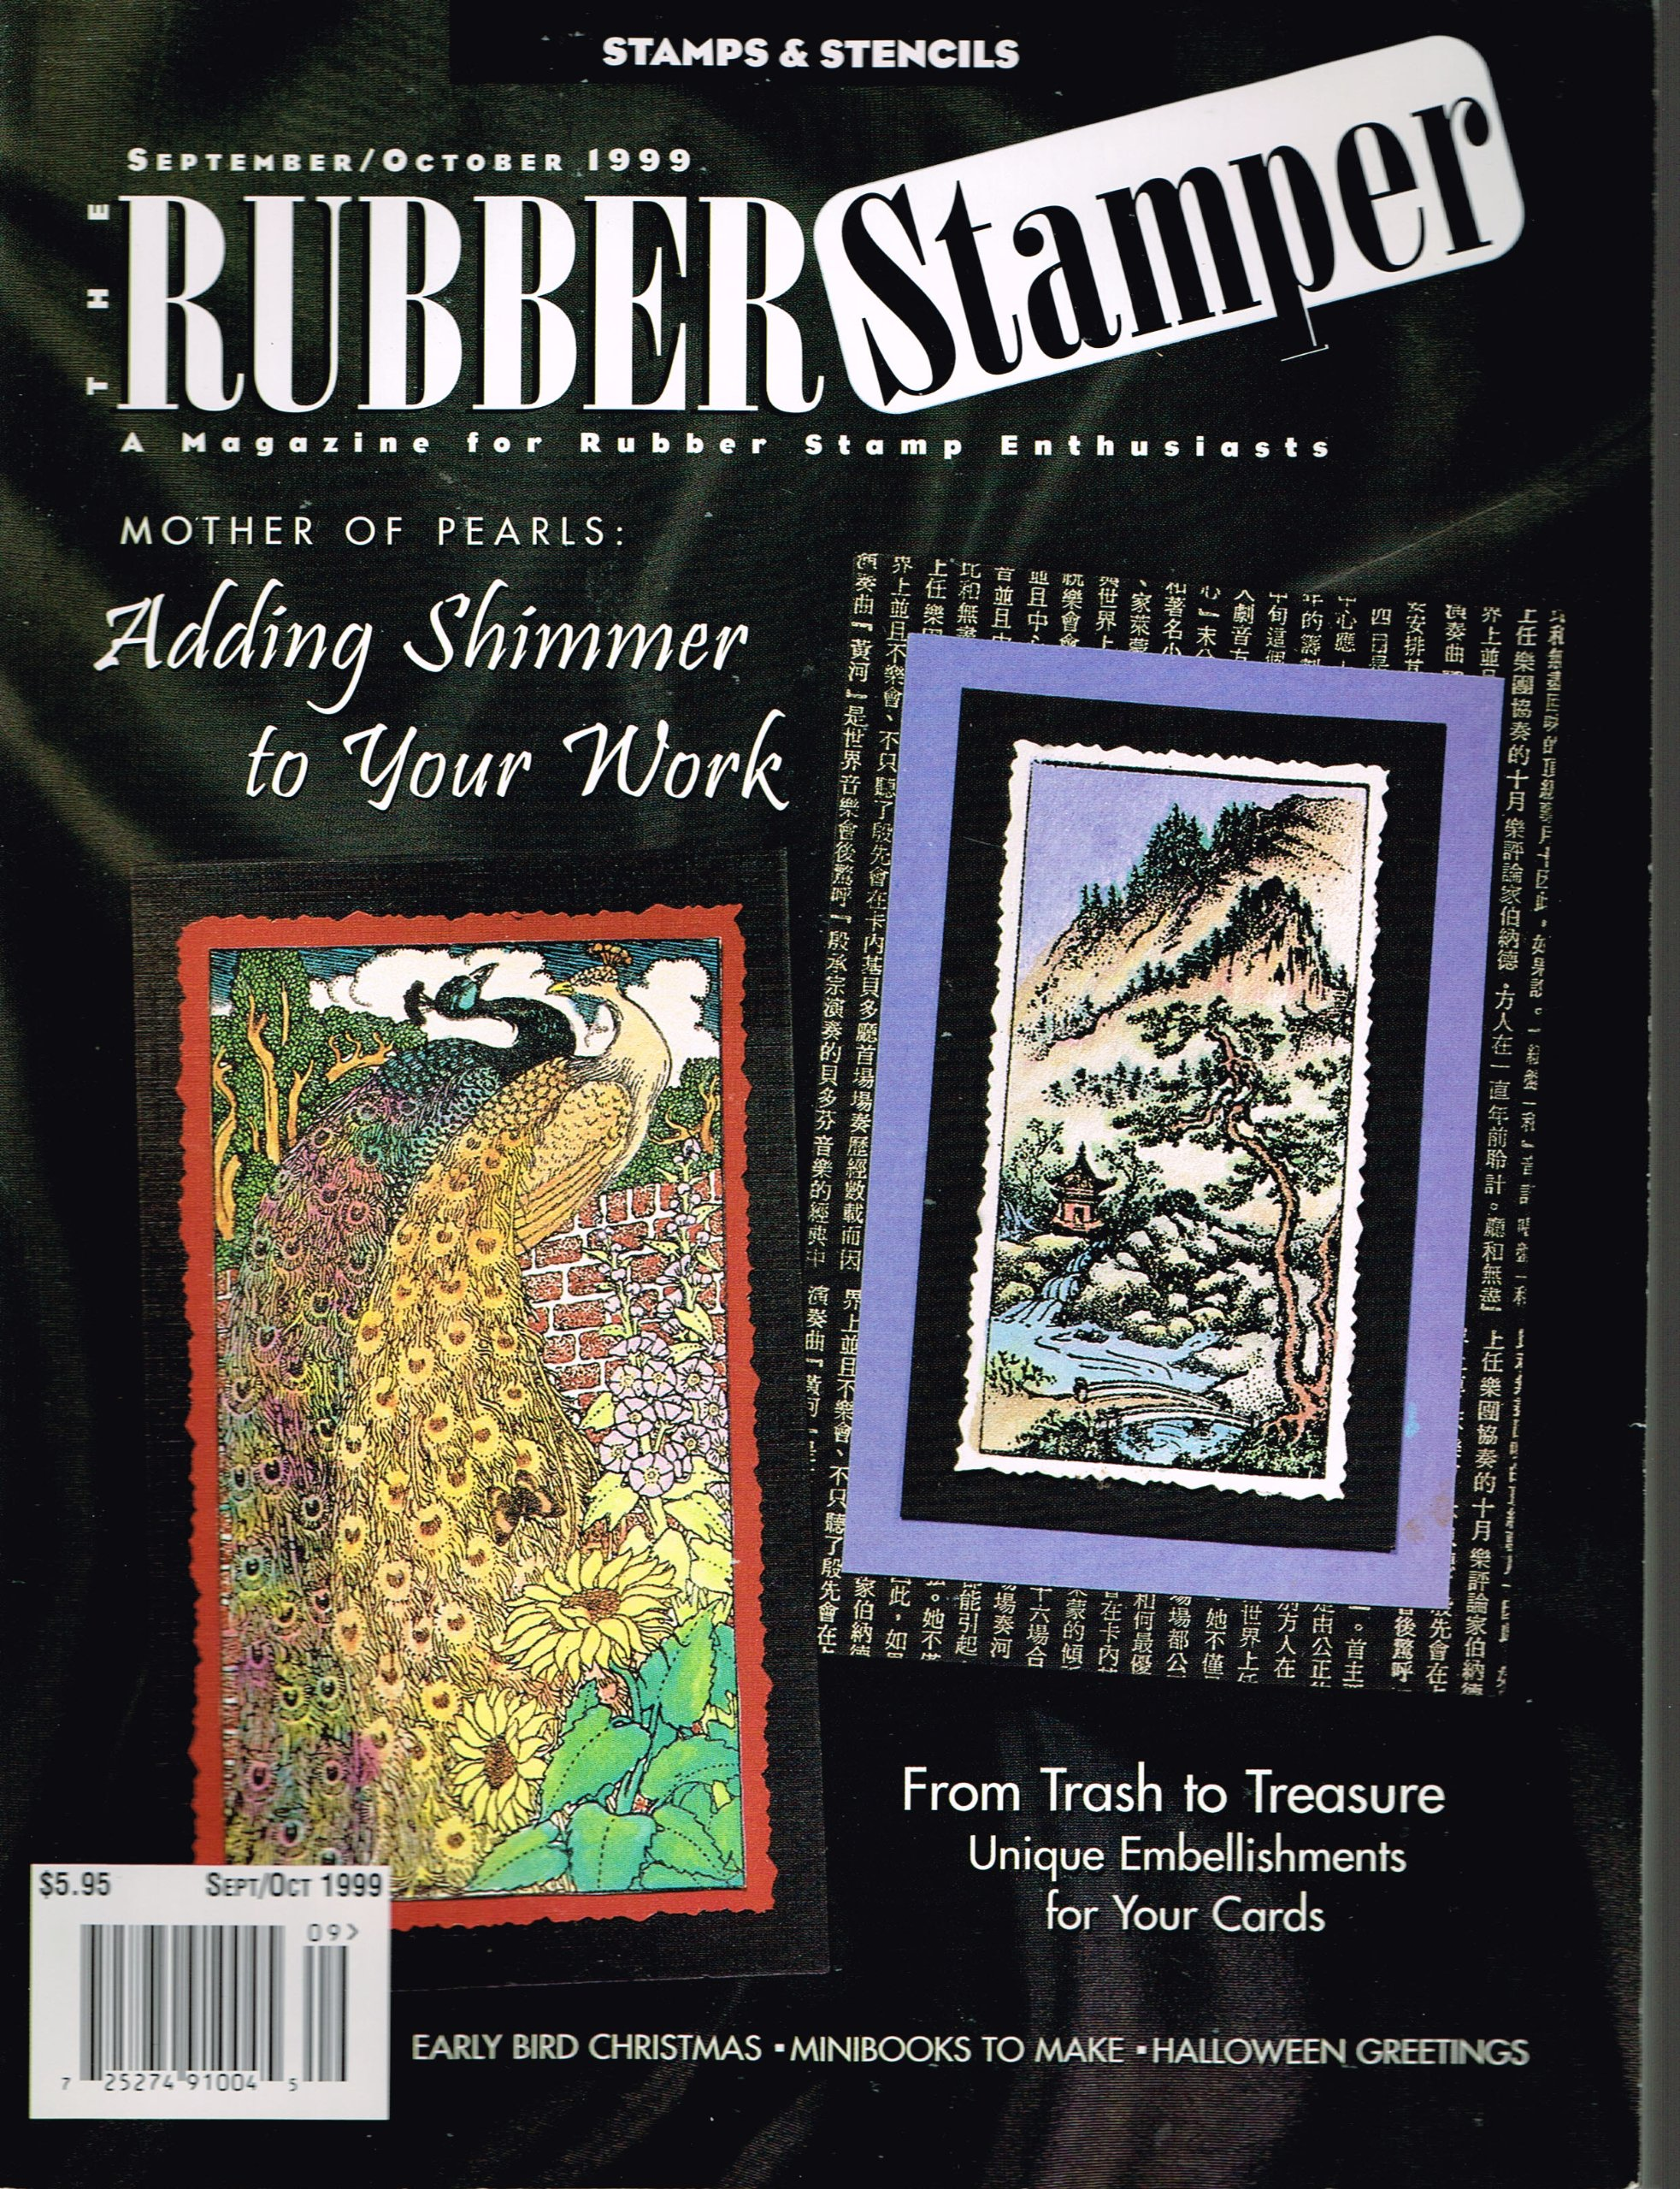 THE RUBBER STAMPER magazine September/October 1999 (For Rubber Stamp Enthusiasts - Stamping Projects & Techniques, Unique Embellishments for Your Cards, Cardmaking, Halloween Greetings, Minibooks to Make, Early Bird Christmas, Adding Shimmer to Your Work, Stamps & Stencils, Volume 3, No. 5)